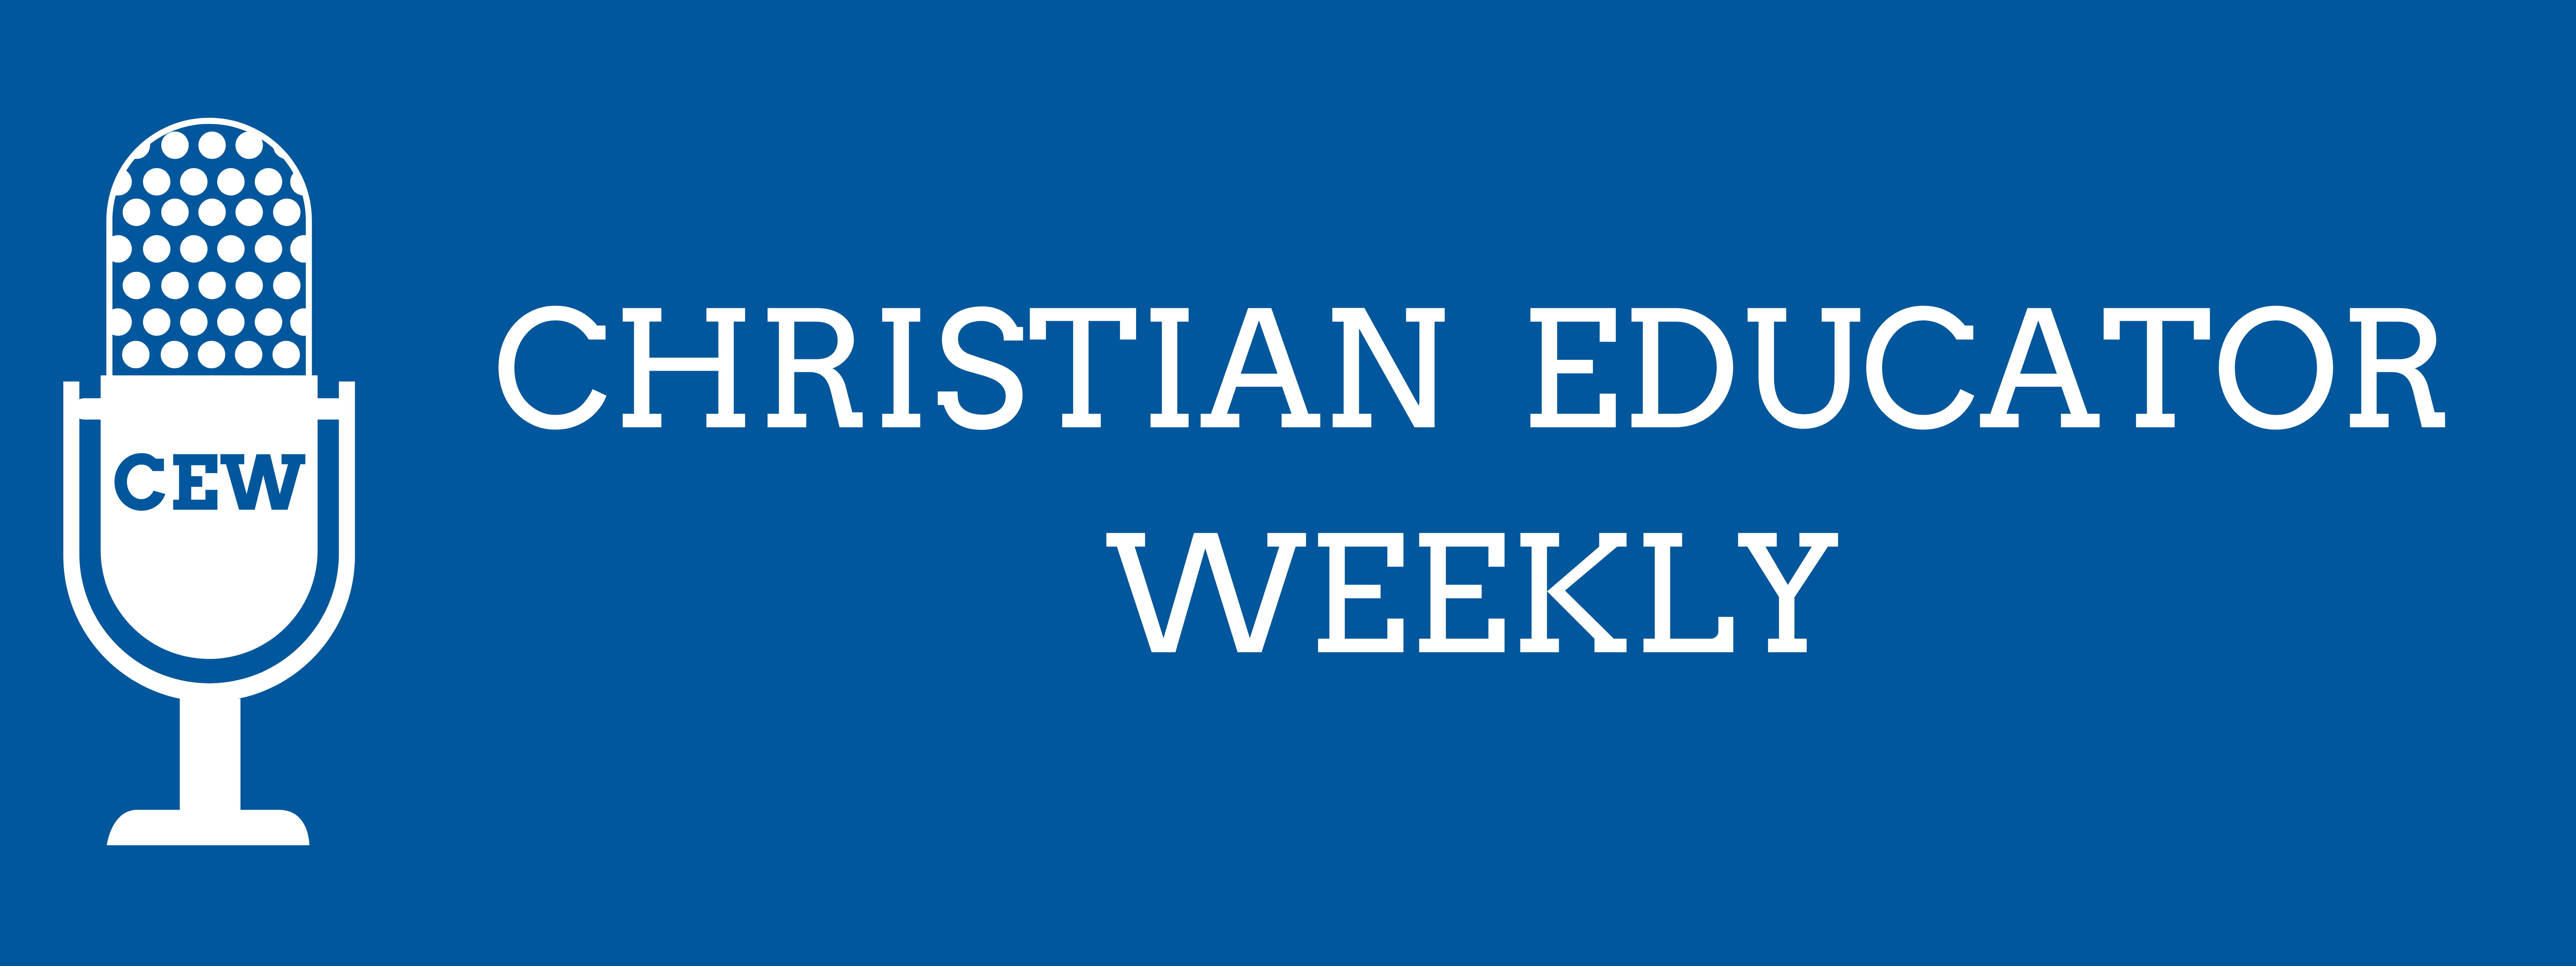 Christian Educator Weekly